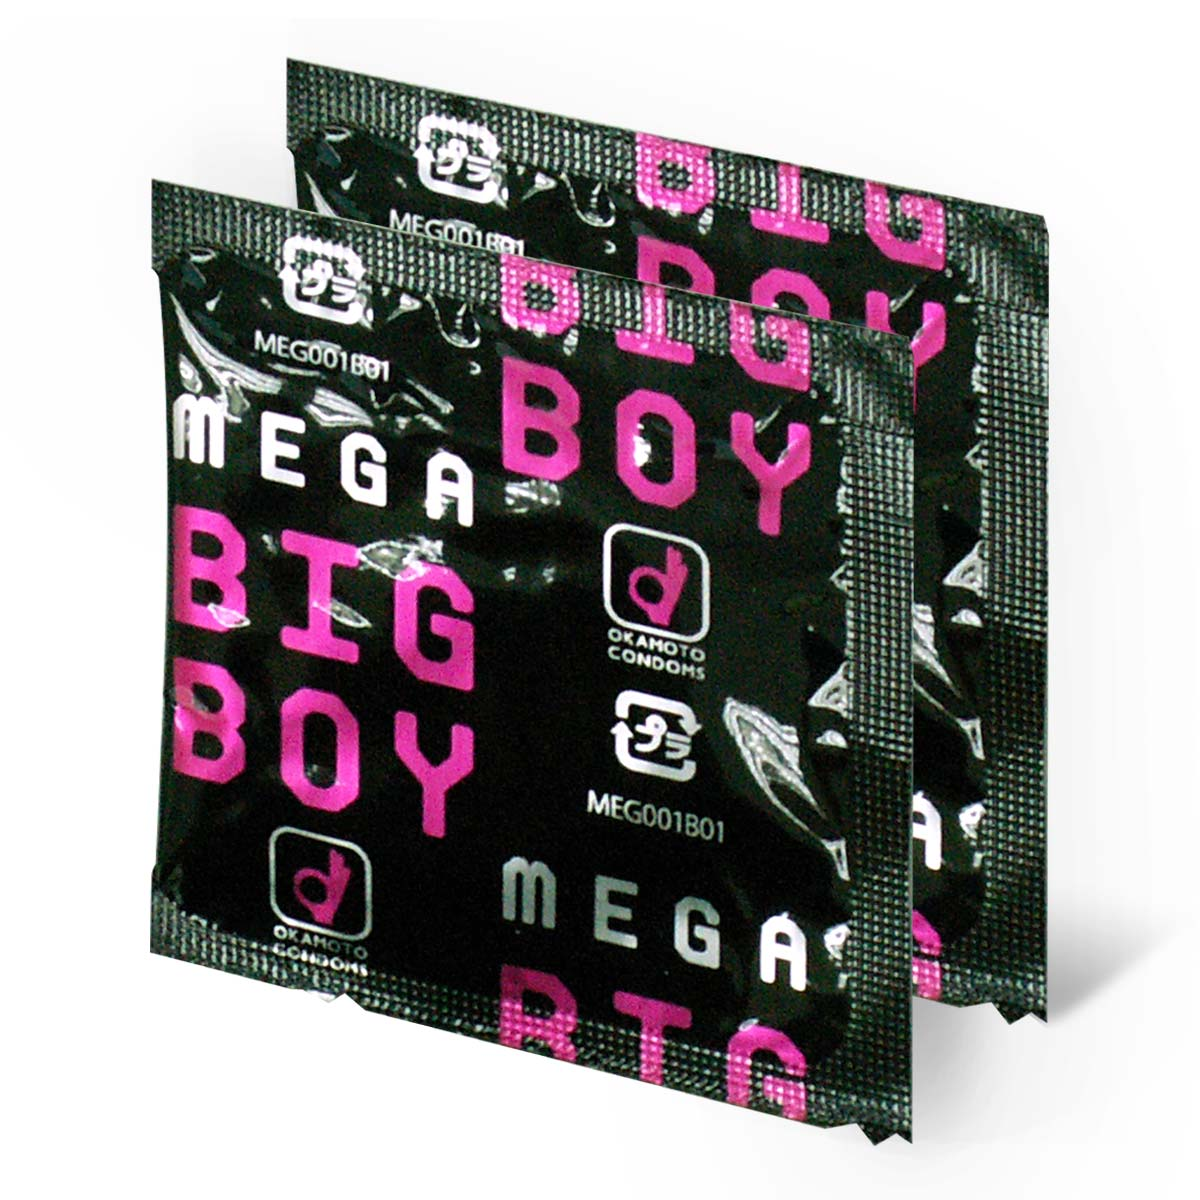 Mega Big Boy 72mm (Japan Edition) 2 pieces Latex Condom